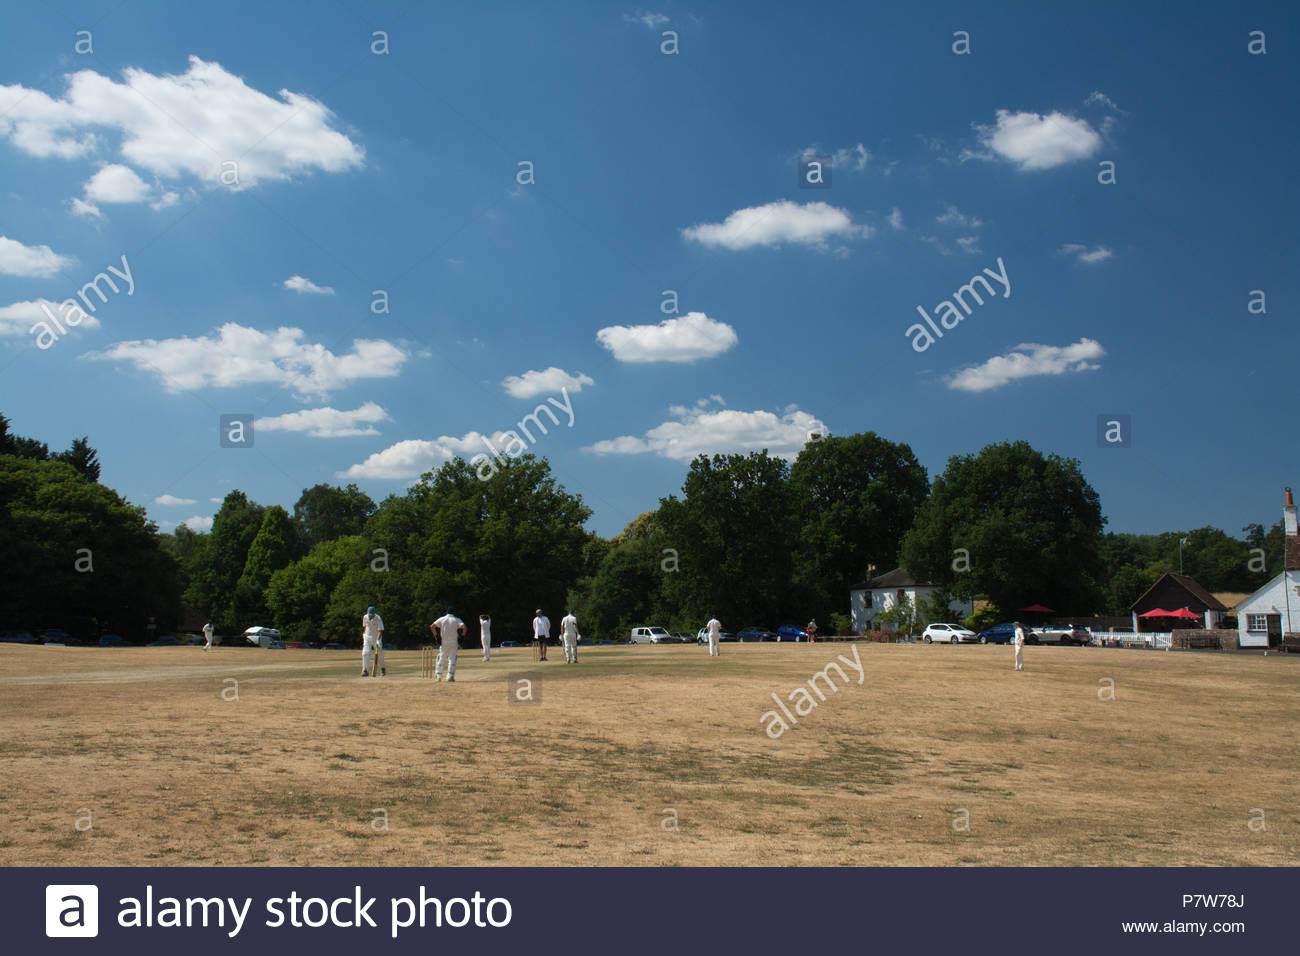 Tilford, Surrey, UK. 8th July, 2018. As the heatwave continues, people were having fun in the sun on a beautiful Sunday afternoon in the pretty village of Tilford. Many were cooling off in the river or sunbathing, while a cricket match was being played on the village green. Credit: GP Images/Alamy Live News. - Stock Image